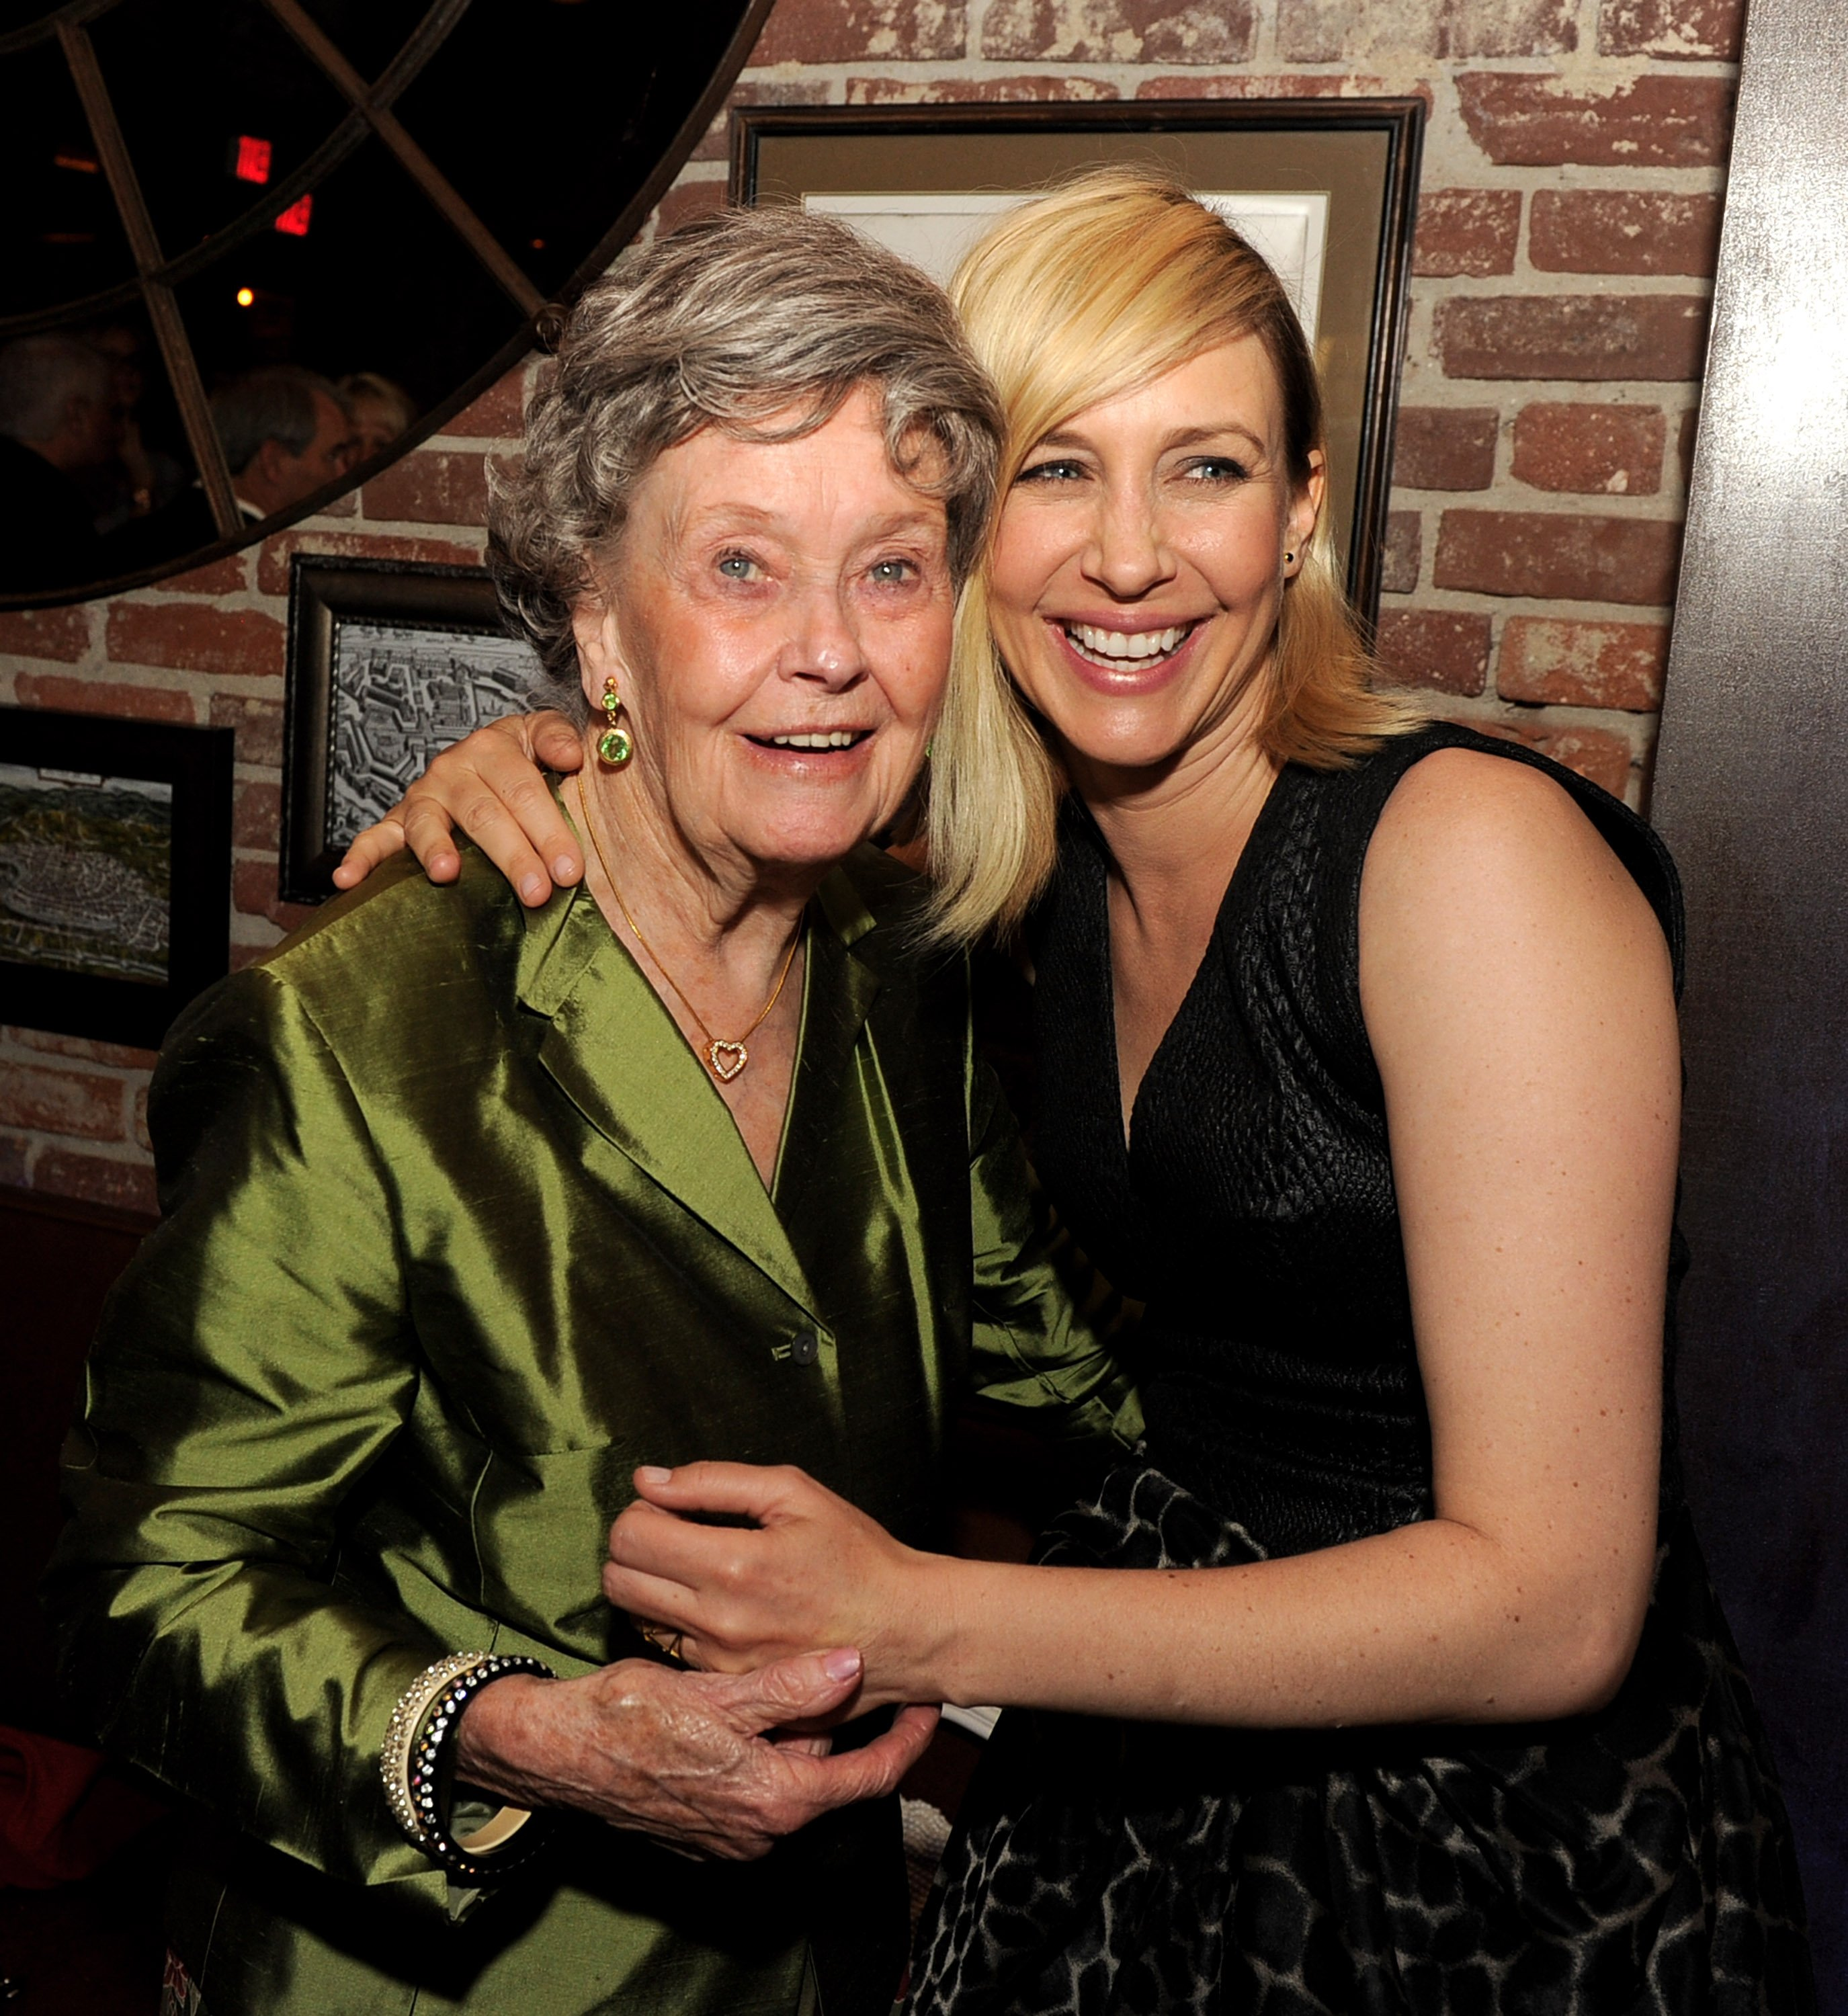 """Lorraine Warren and Vera Farmiga at the Premier of """"The Conjuring"""" in 2013 